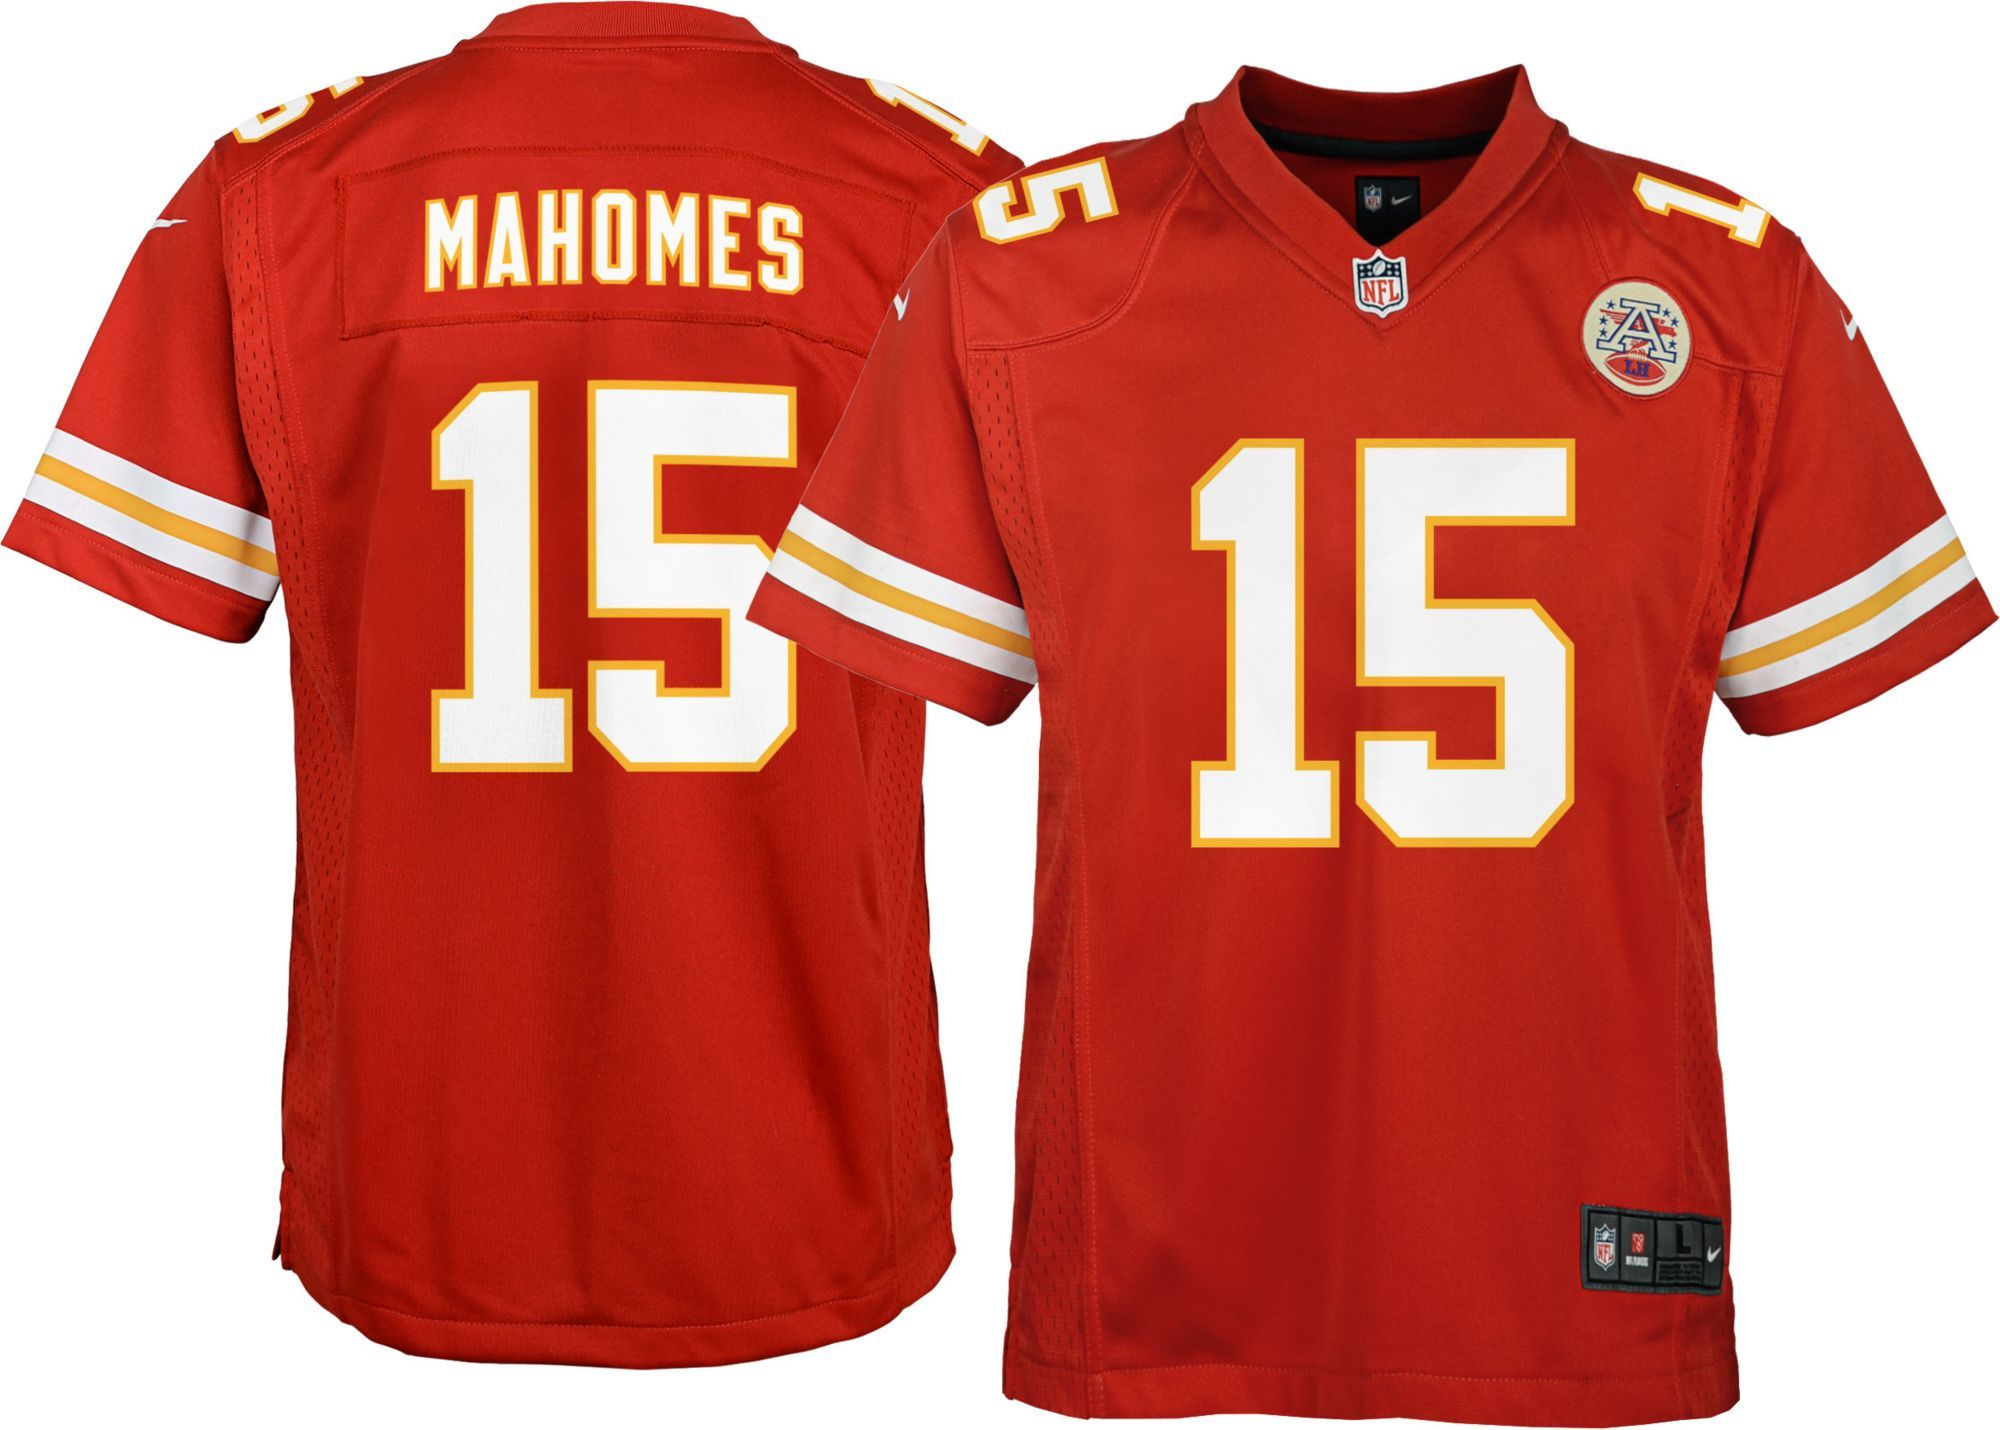 Nike Youth Home Game Jersey Kansas City Patrick Mahomes  15 in 2019 ... 90c788e8a